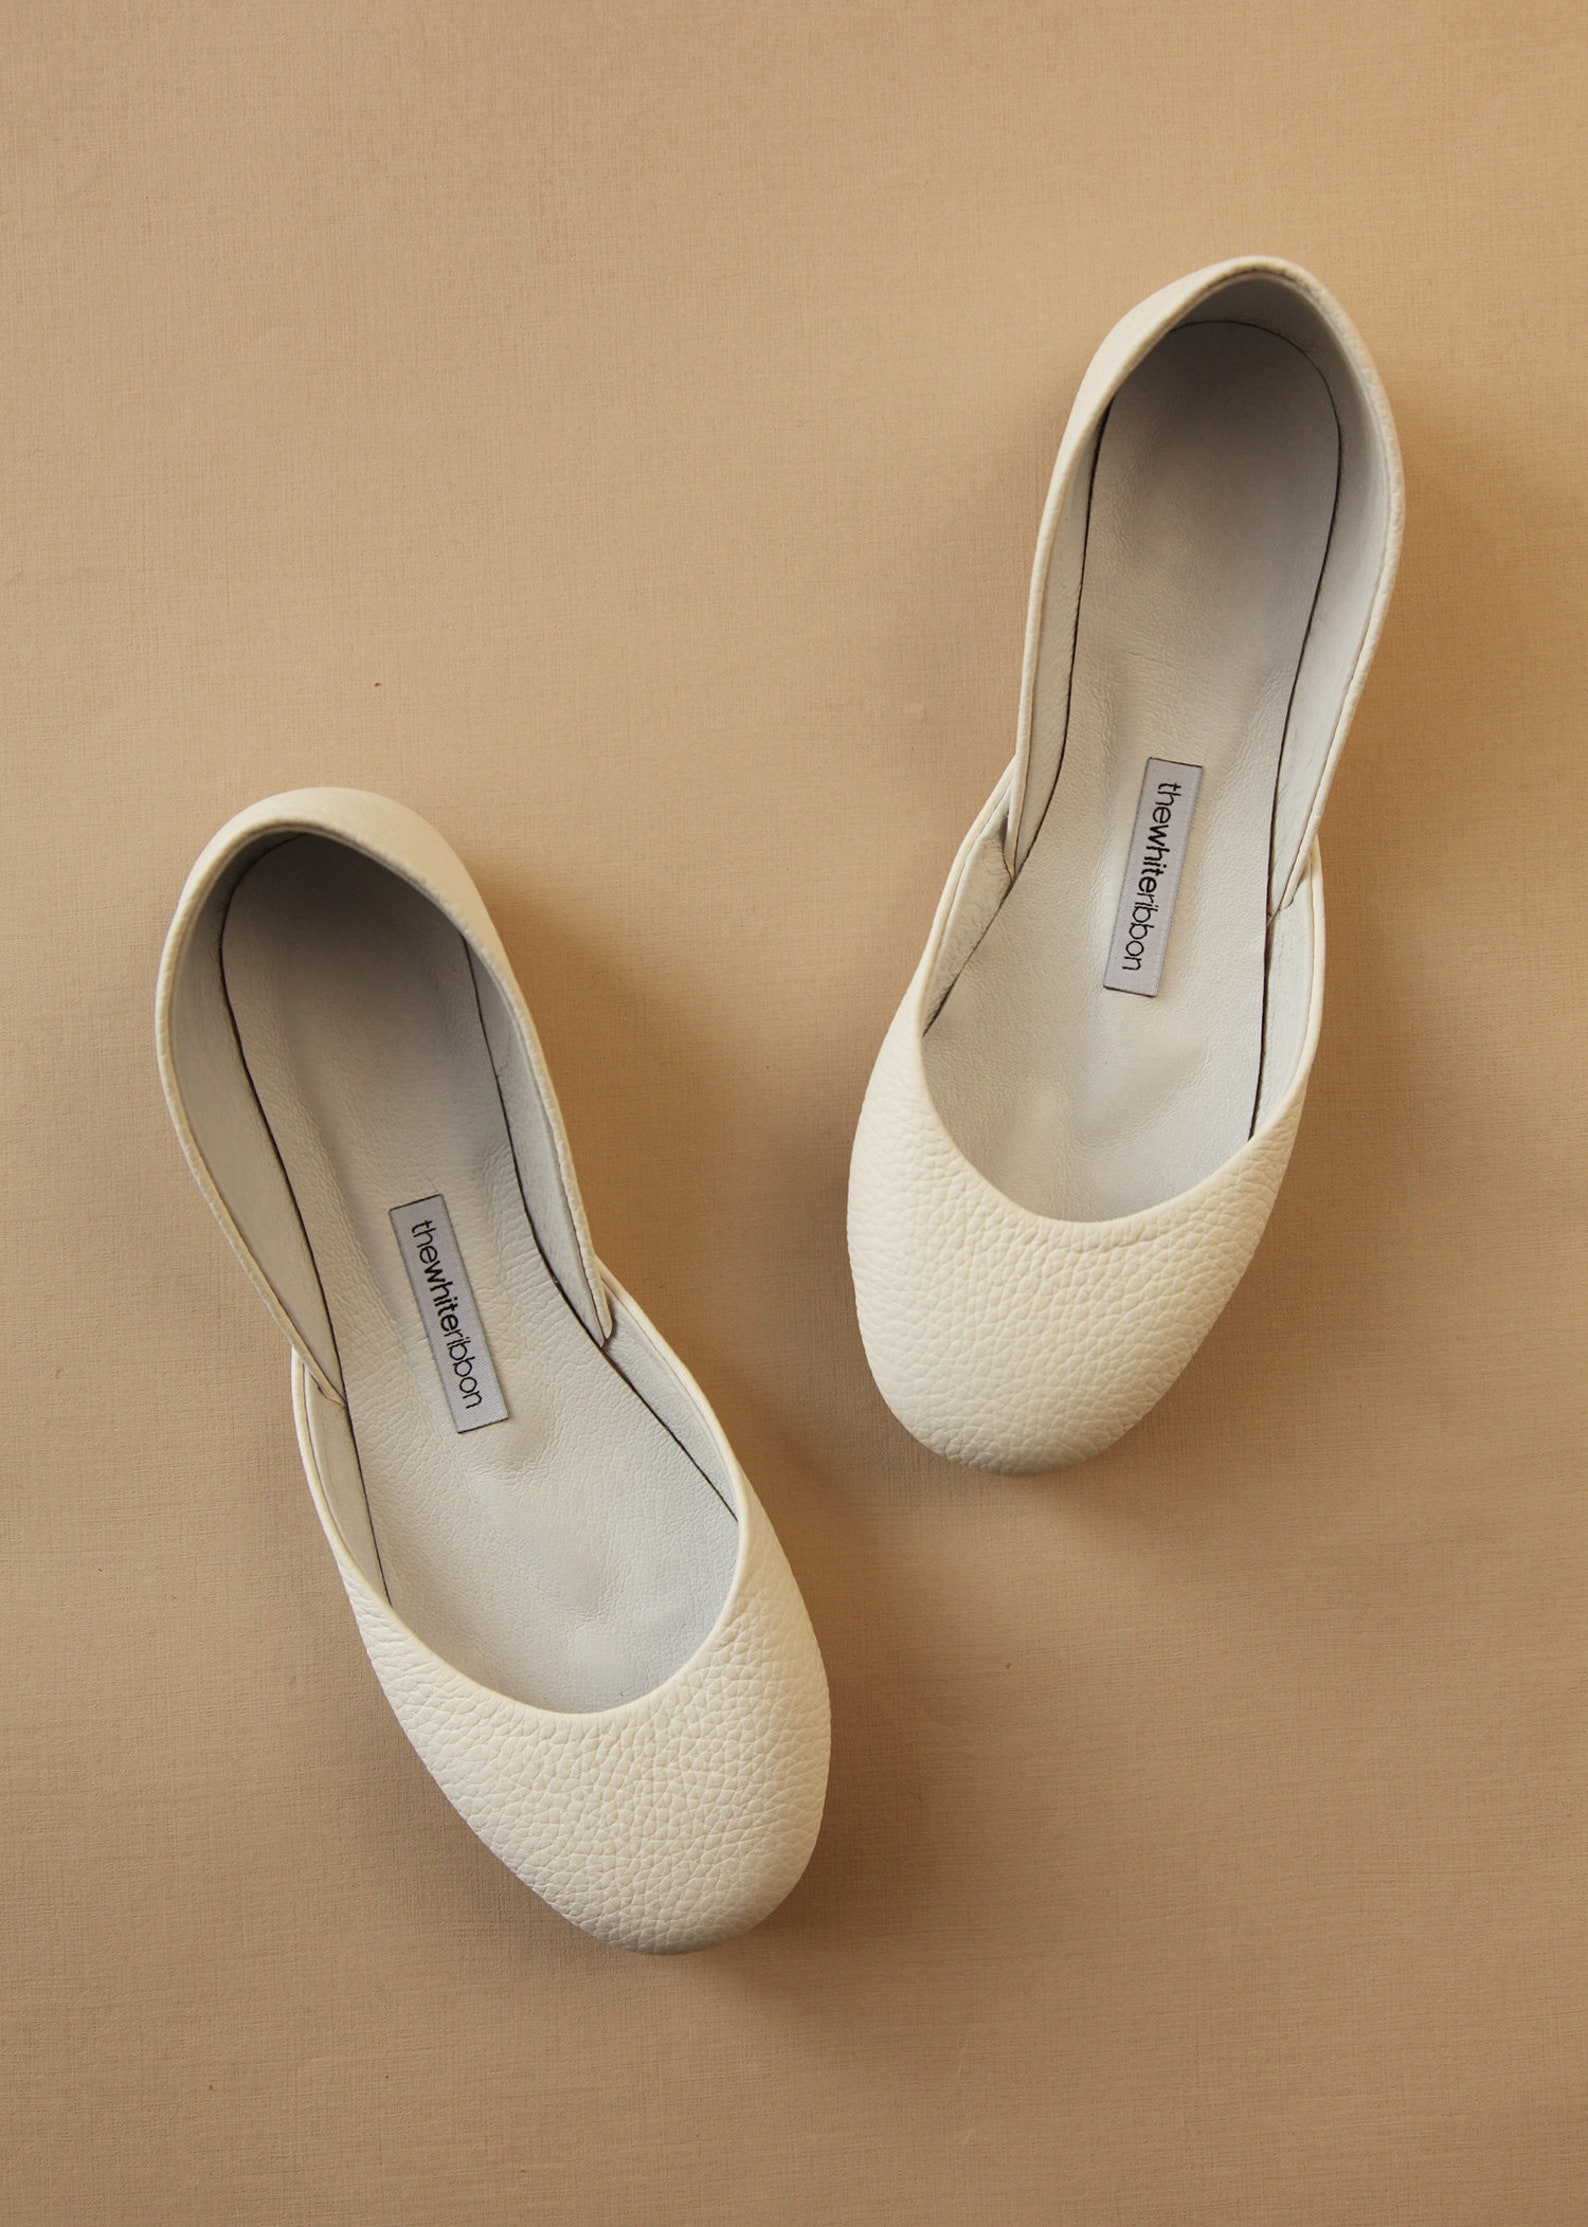 the classic ballet flats in ivory textured | pointe style shoes | standard width | ivory textured | classic cut | ready to ship